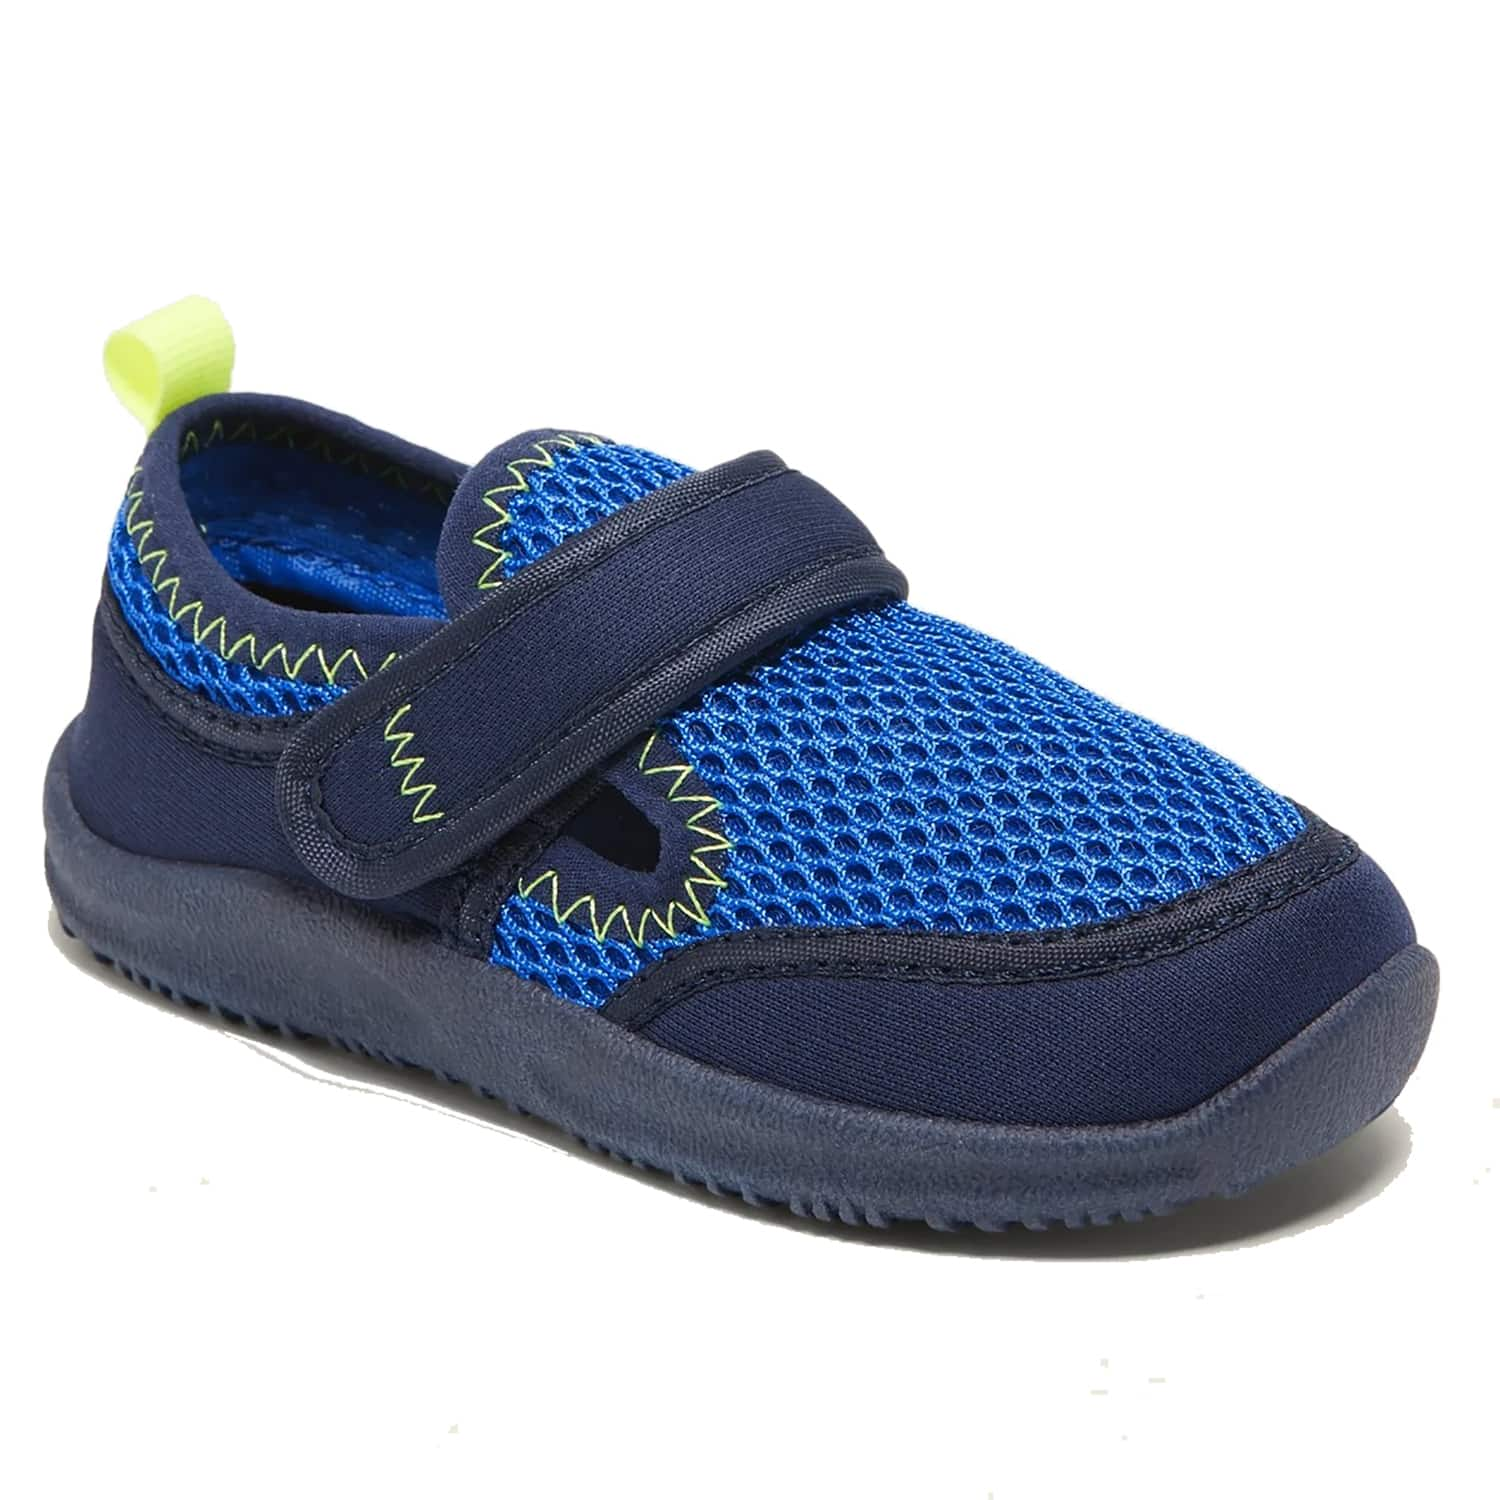 Old Navy Toddler Mesh Water Shoes (Blue or Pink) $4.50, Glitter-Jelly Flats $3.50, Baby Zip Front Rashguard $5.60 & More + Free store pickup